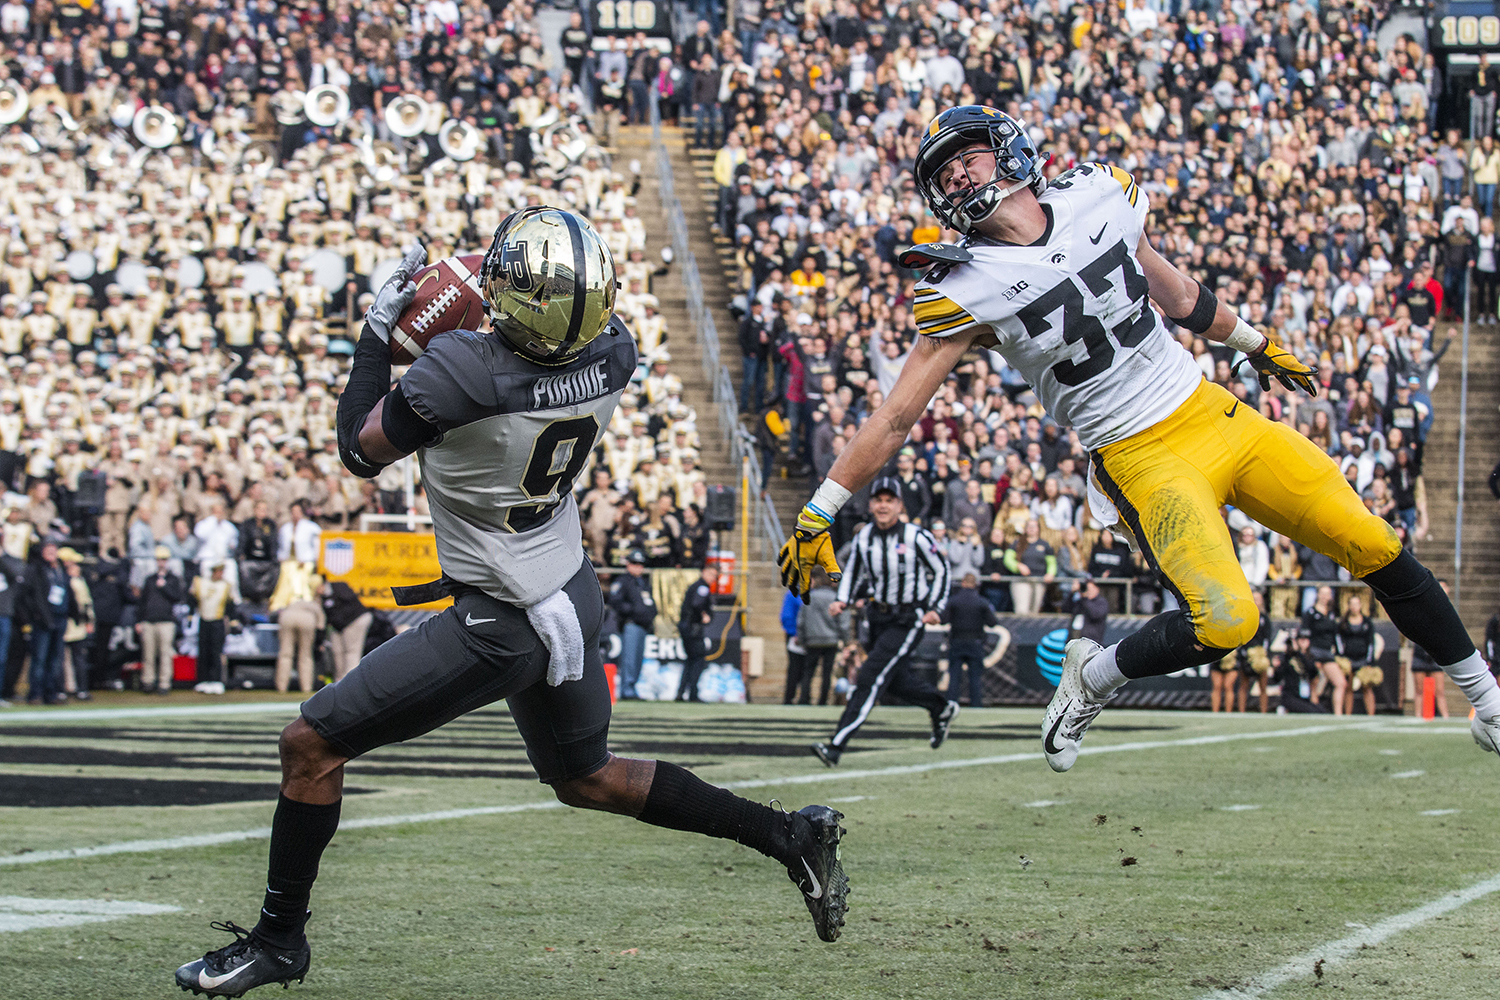 Purdue+wide+receiver+Terry+Wright+catches+a+pass+during+the+Iowa%2FPurdue+game+at+Ross-Ade+Stadium+in+West+Lafayette%2C+Ind.+on+Saturday%2C+November+3%2C+2018.+The+Boilermakers+defeated+the+Hawkeyes+38-36.+